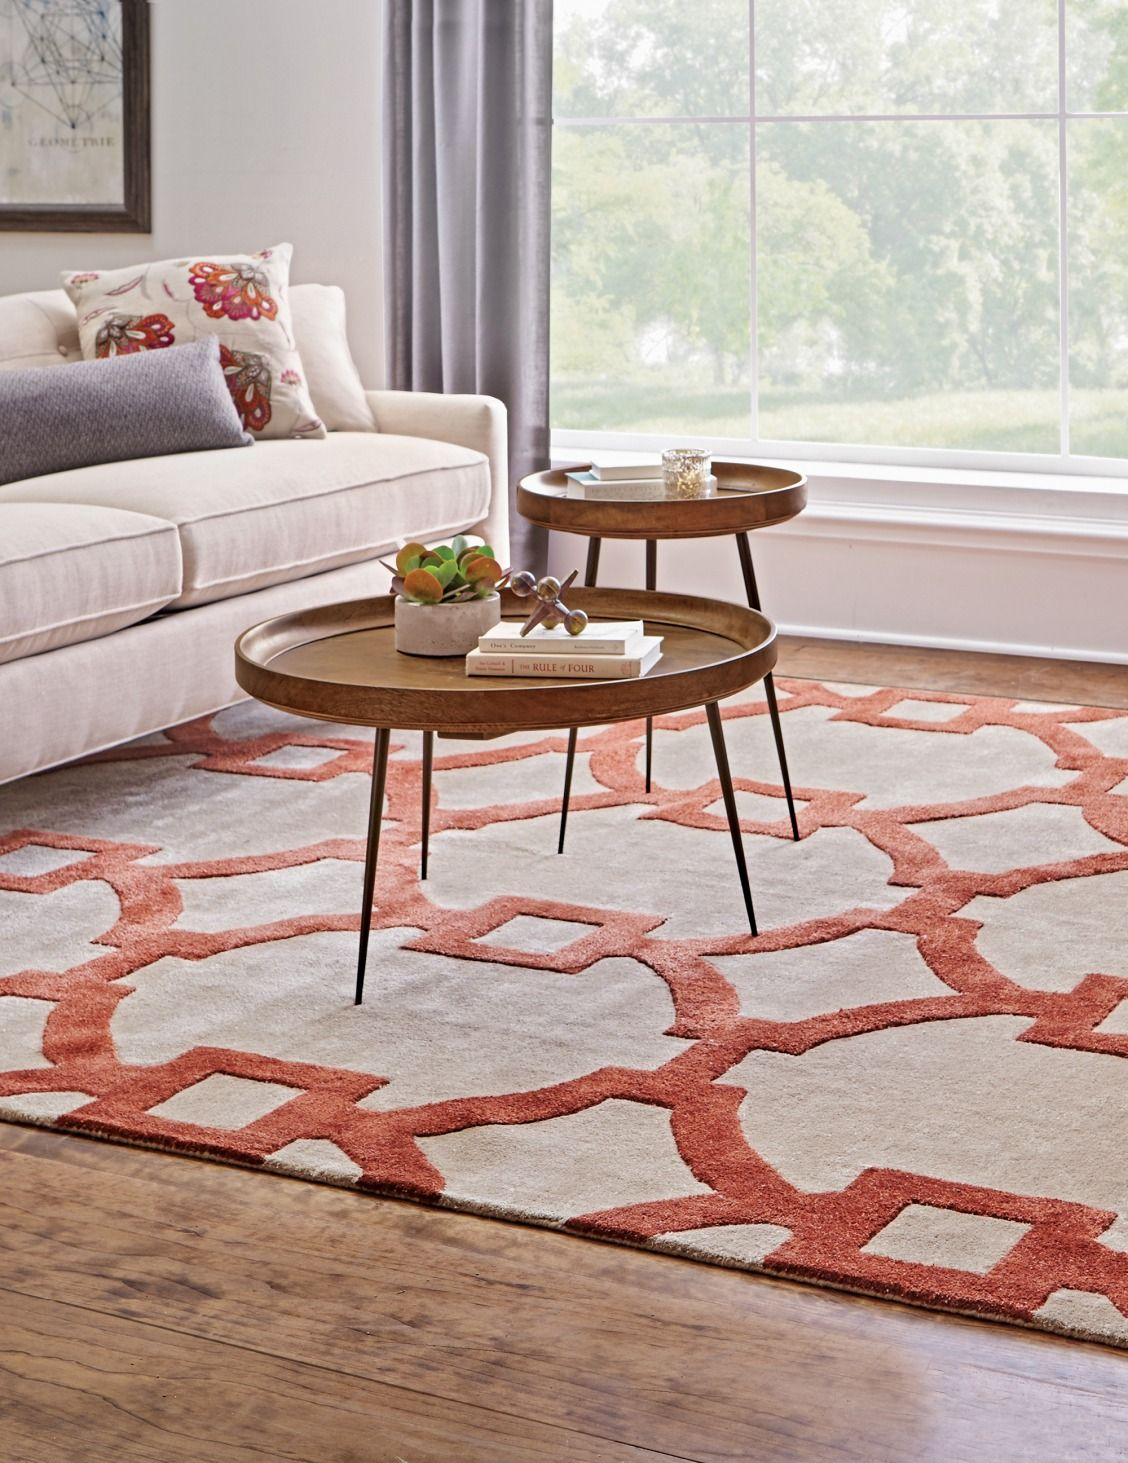 Make Your Living Room More Comfortable With Our Sawyer Area Rug It Has A 1 2 Thick Pile For Great Comfort And Texture Underfoot